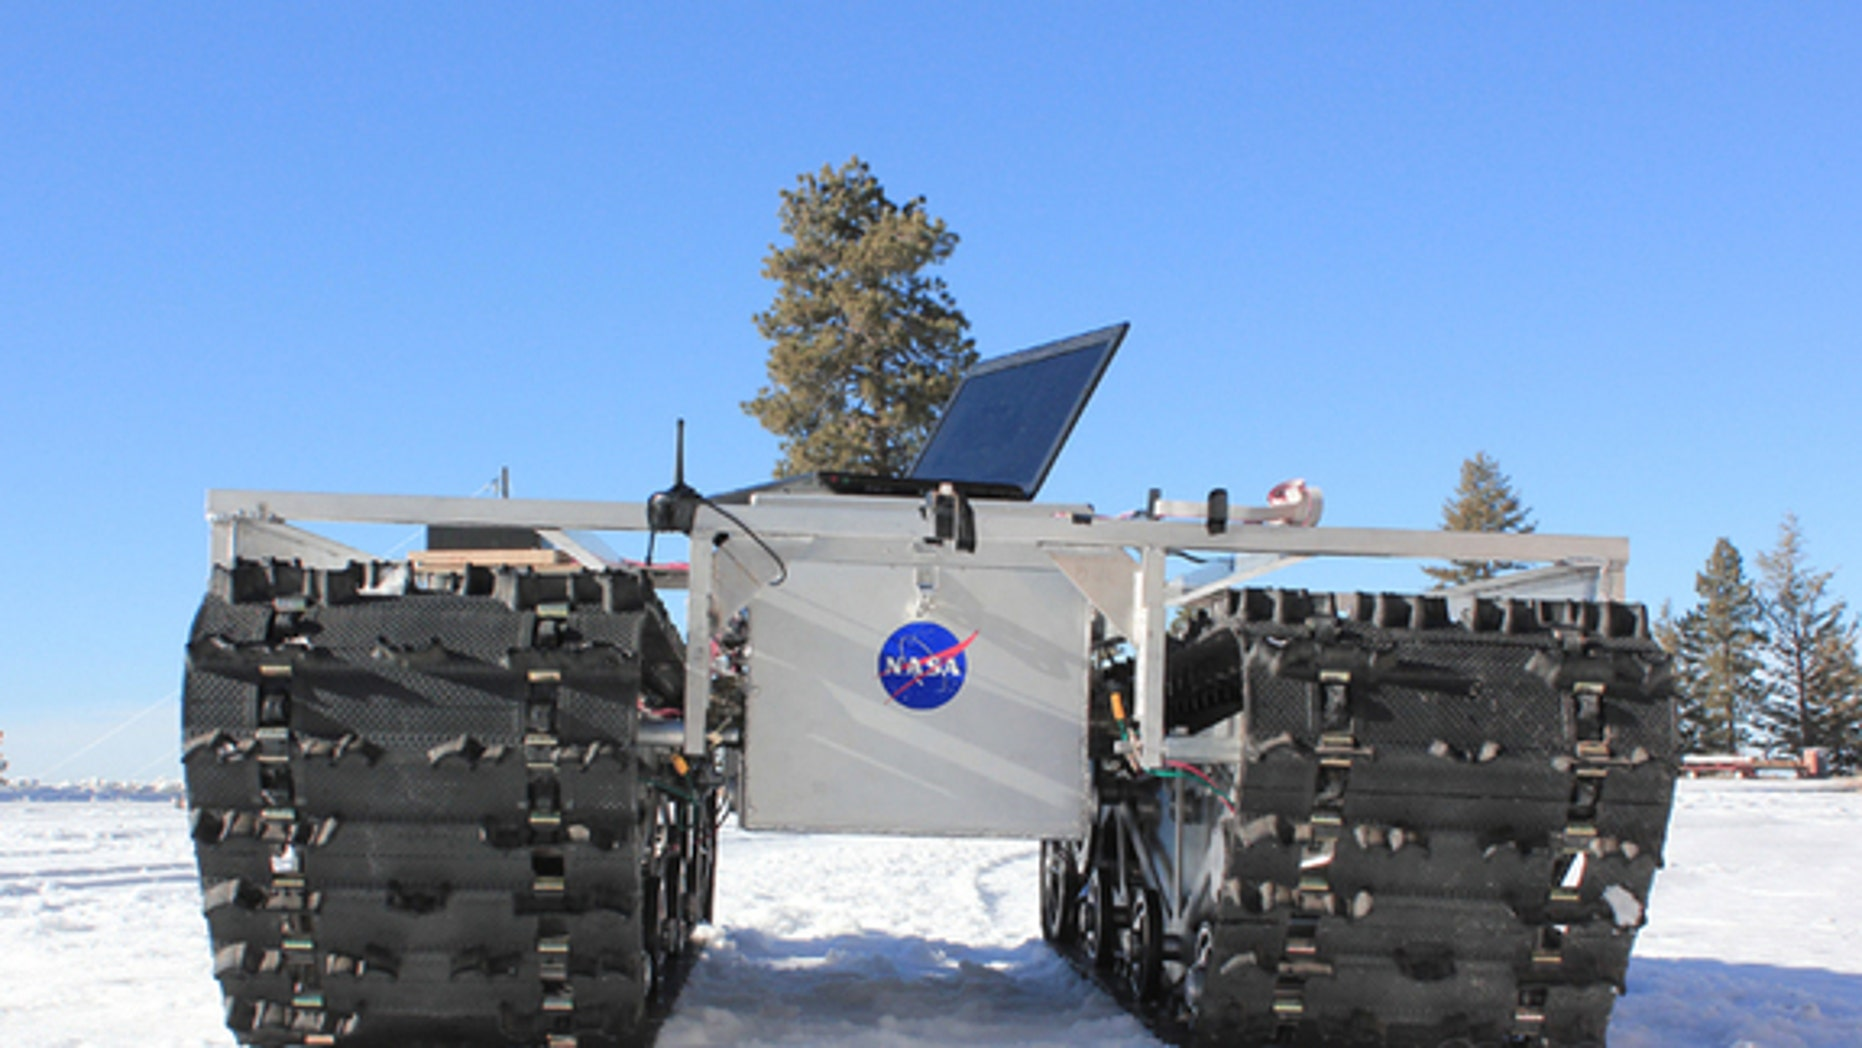 A prototype of GROVER, minus its solar panels, was tested in January 2012 at a ski resort in Idaho. The laptop in the picture is for testing purposes only and not part of the final product.